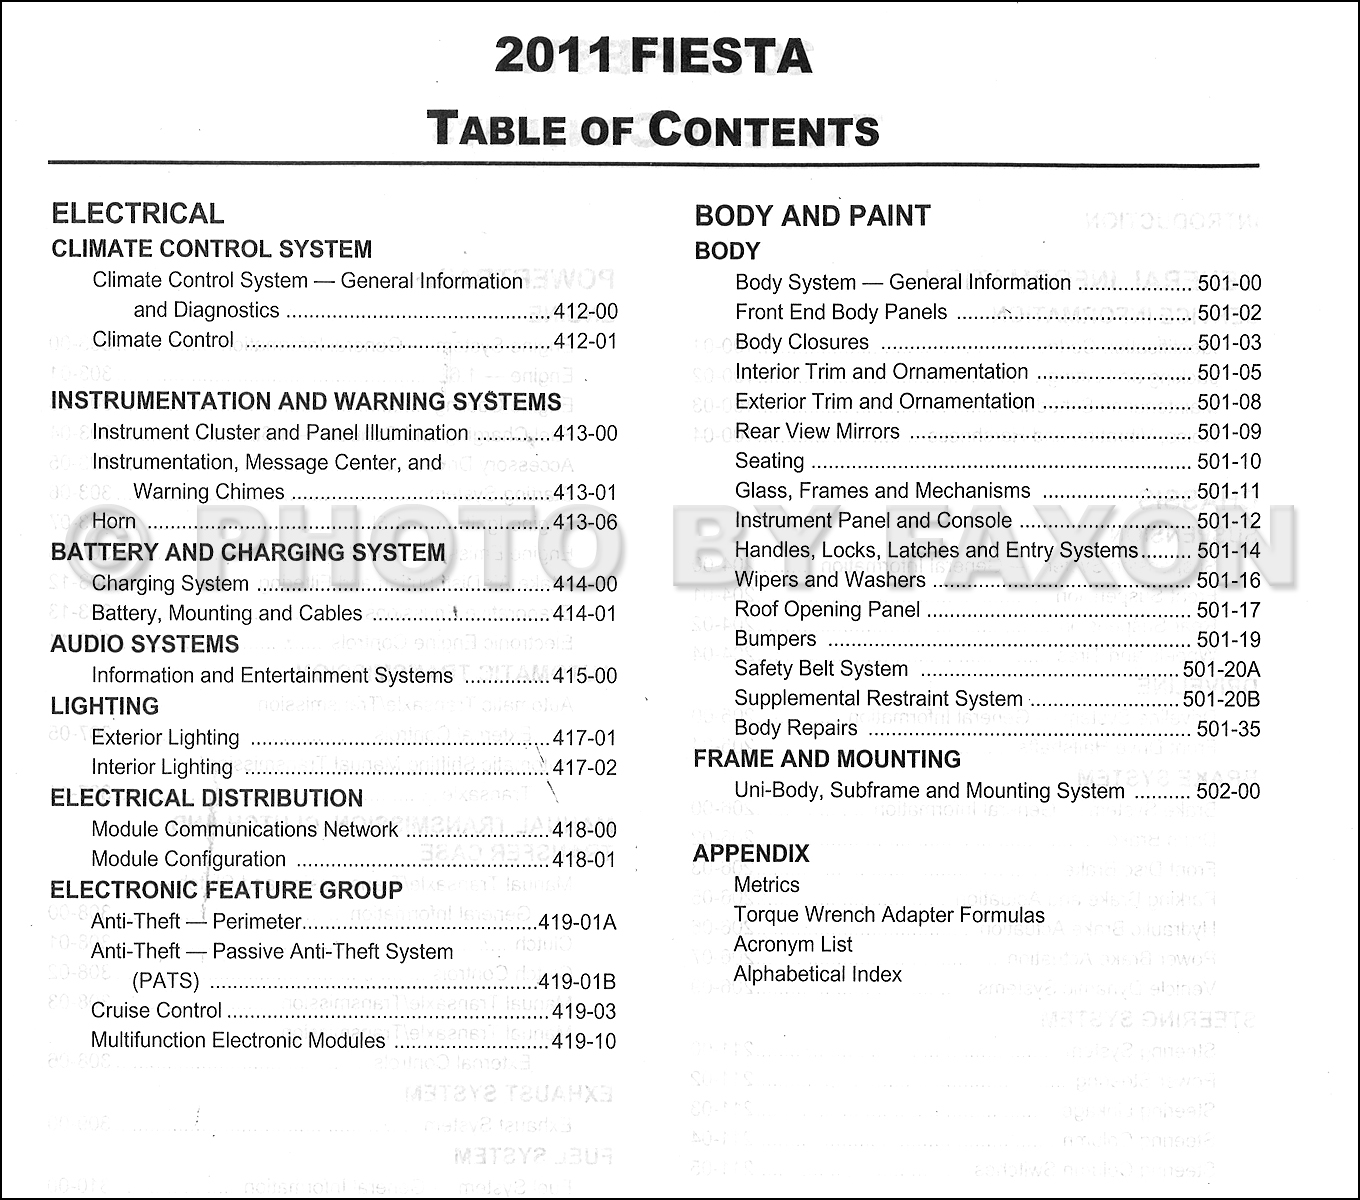 2011 ford fiesta fuse box wiring diagram specialtiesfuse box on a ford fiesta wiring library